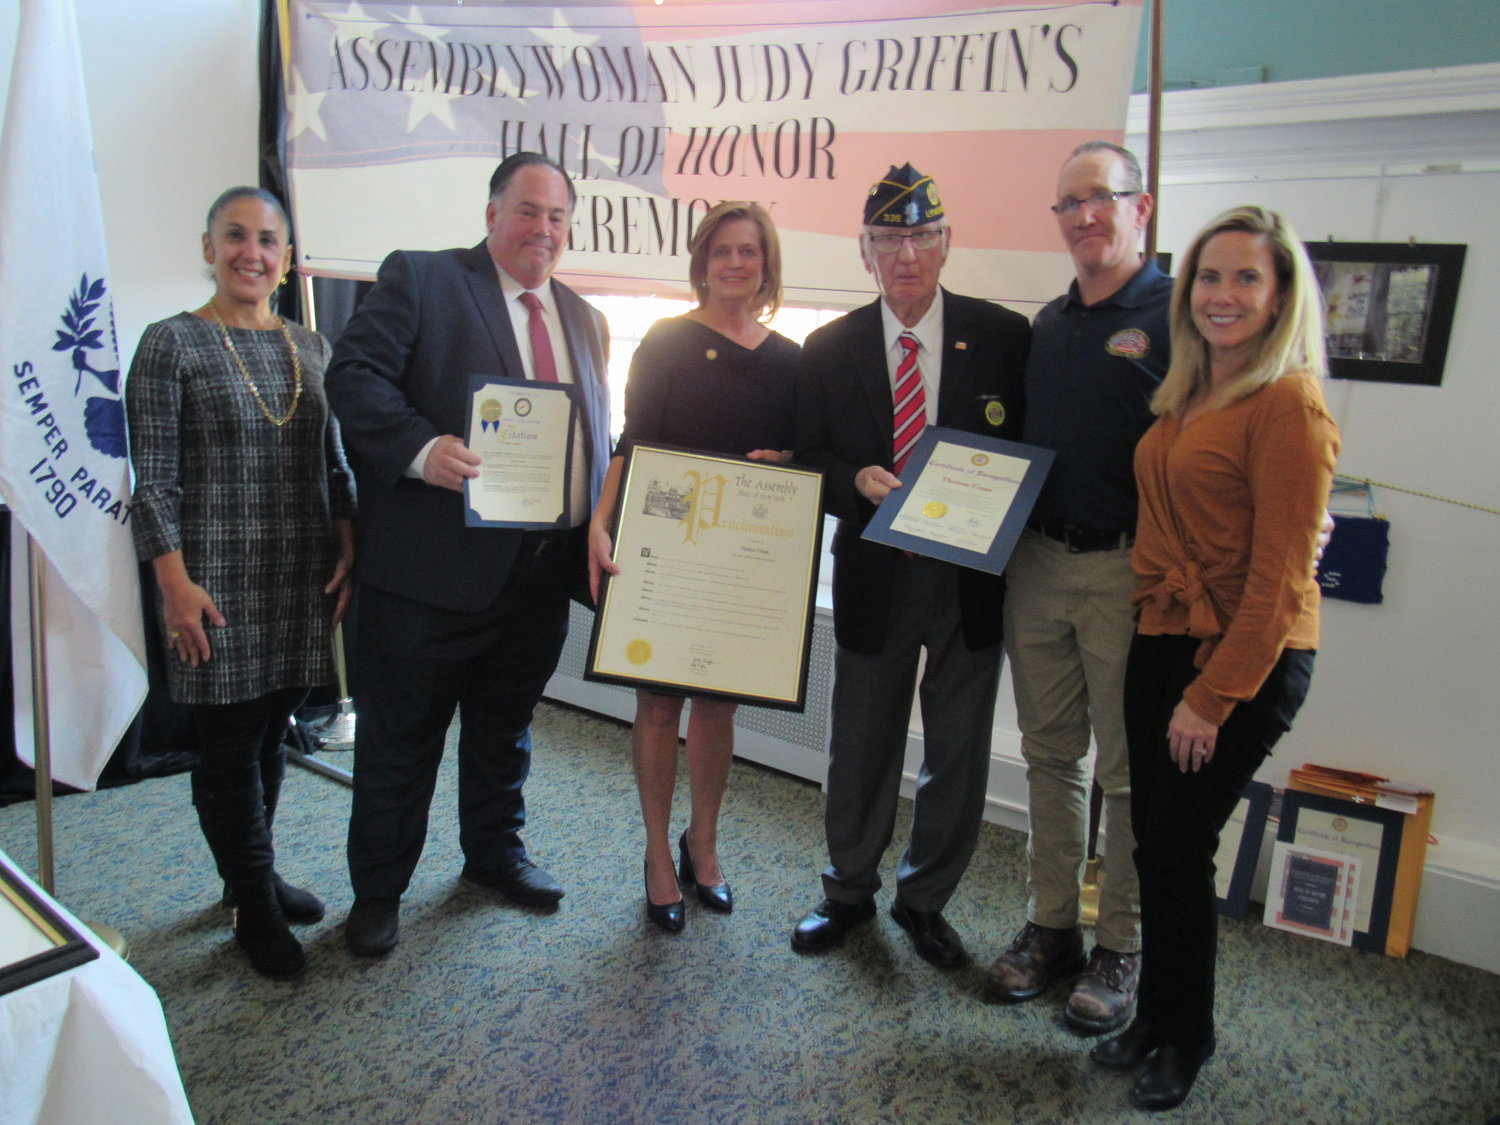 Tom Finan, of American Legion Post 335 in Lynbrook, third from right, was recognized by, from left, Cabana, Hawxhurst, Griffin and Gillen.